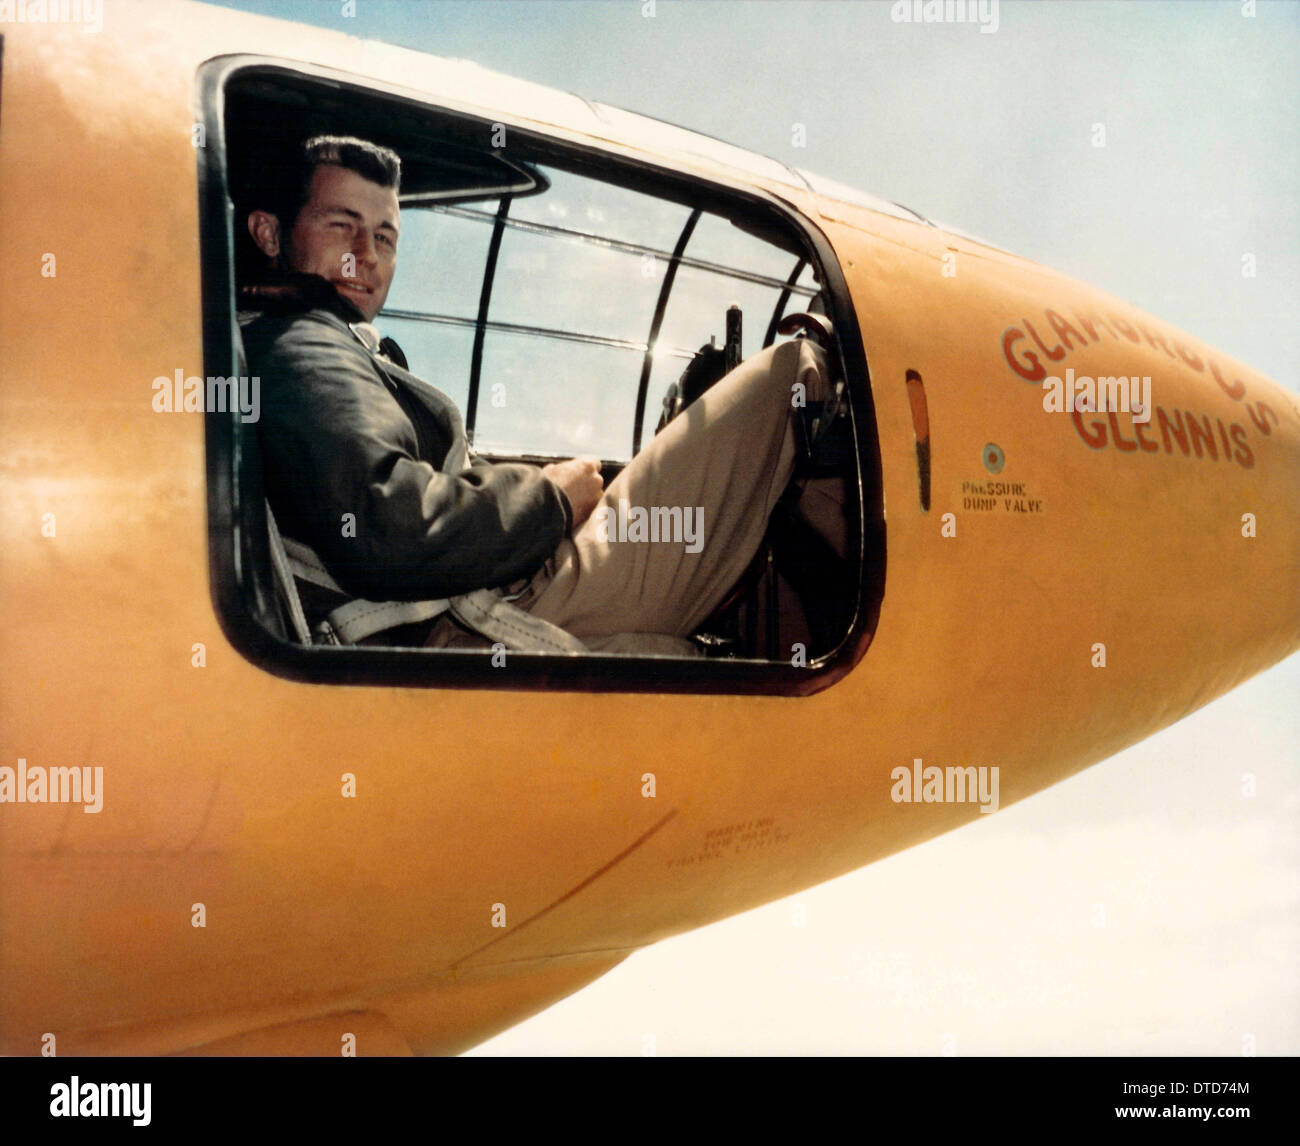 US Air Force test pilot Captain Chuck Yeager sitting in the cockpit of Glamorous Glennis the Bell X-1 aircraft that Stock Photo